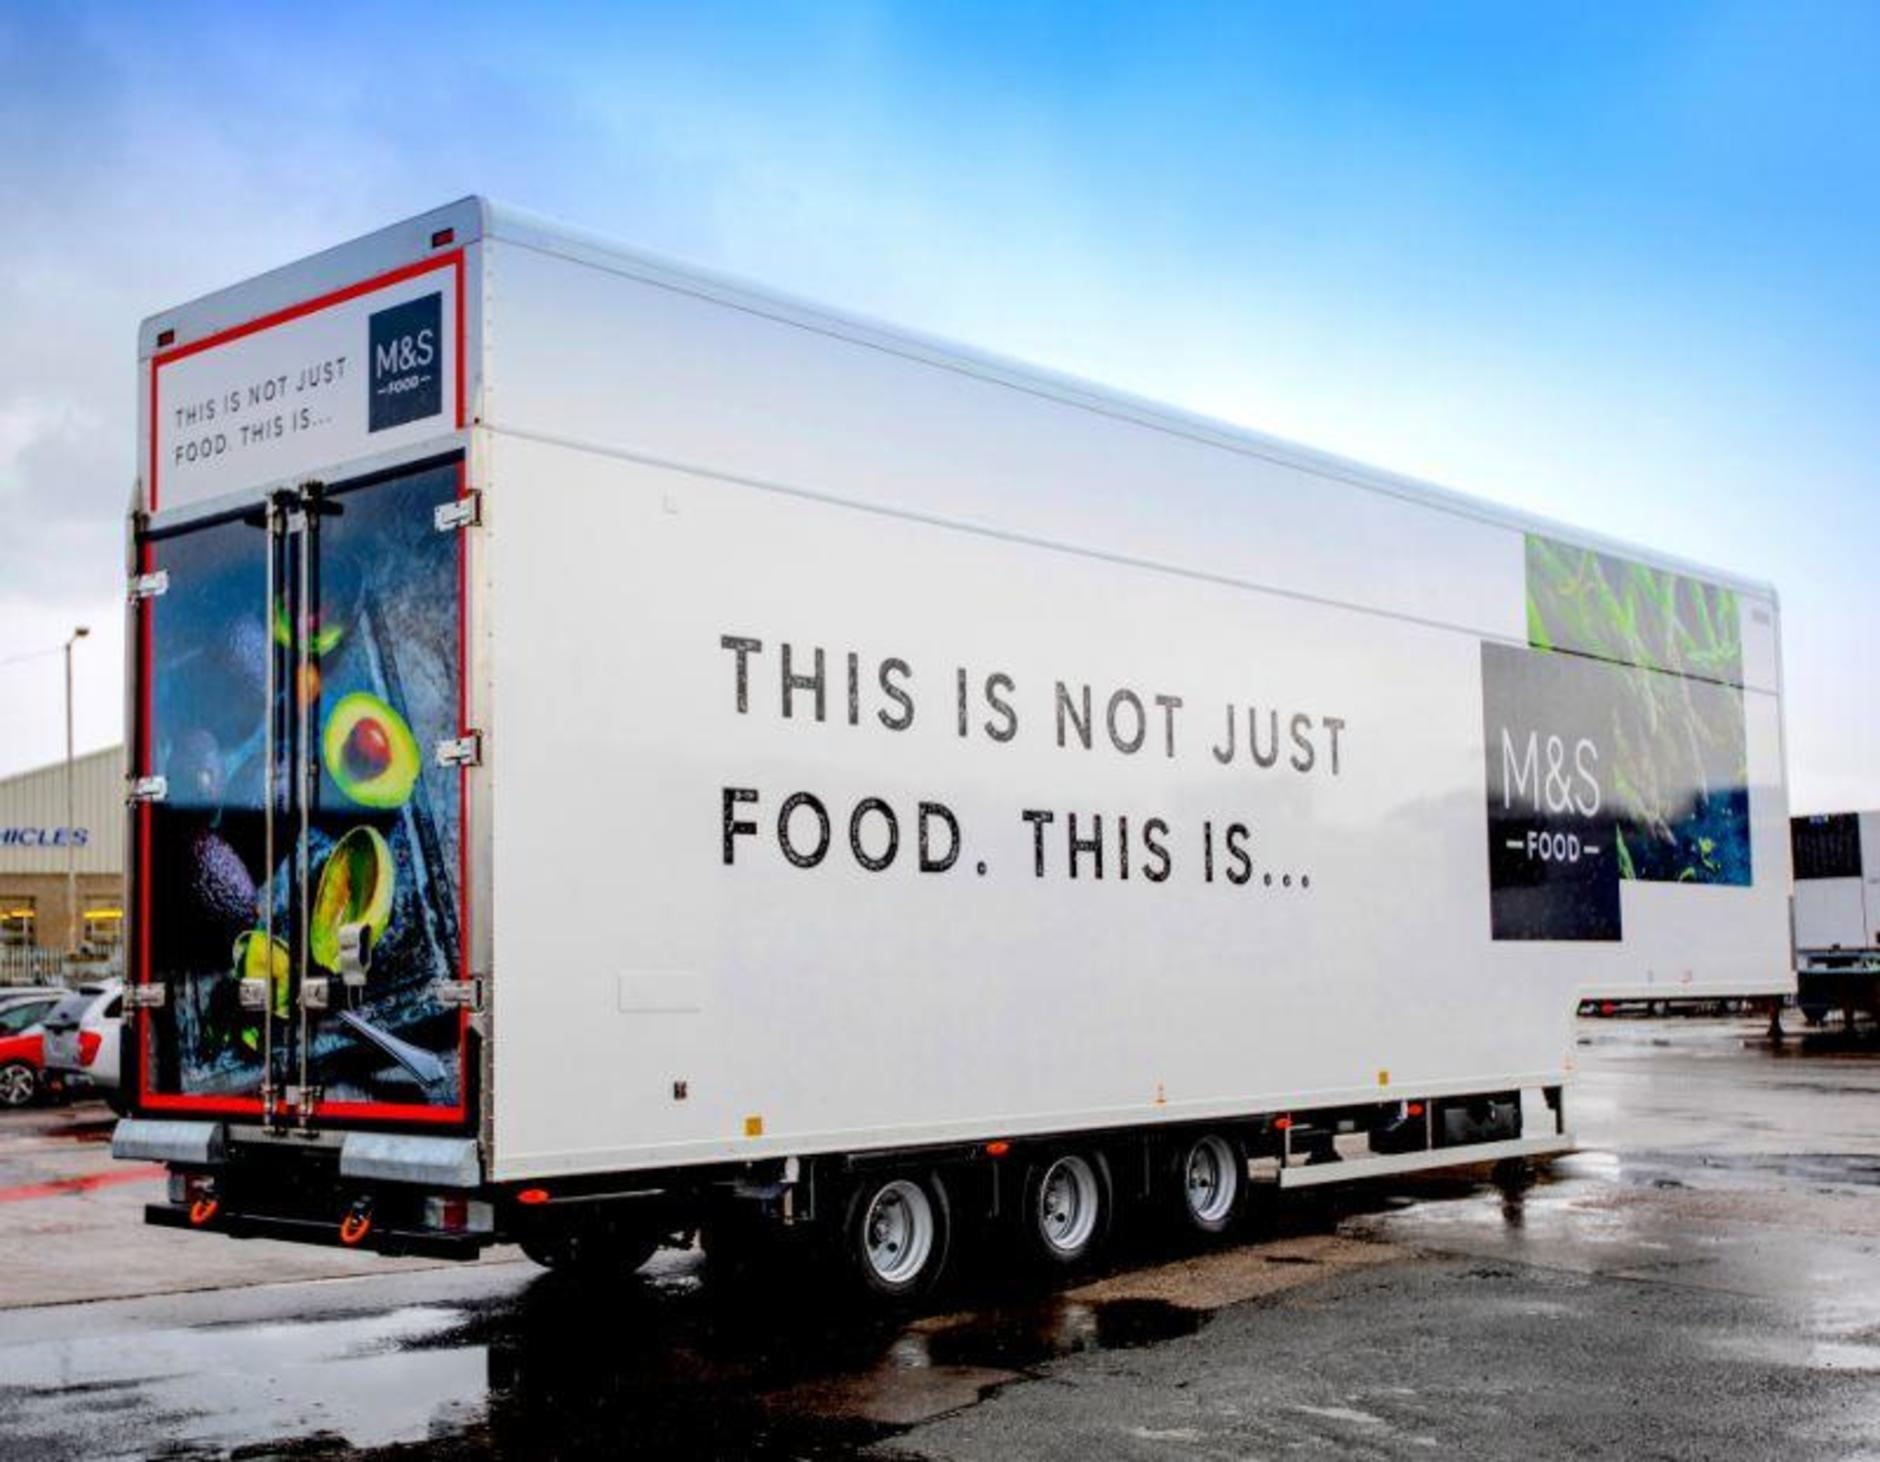 M&S Trailer at TCS&D 2019